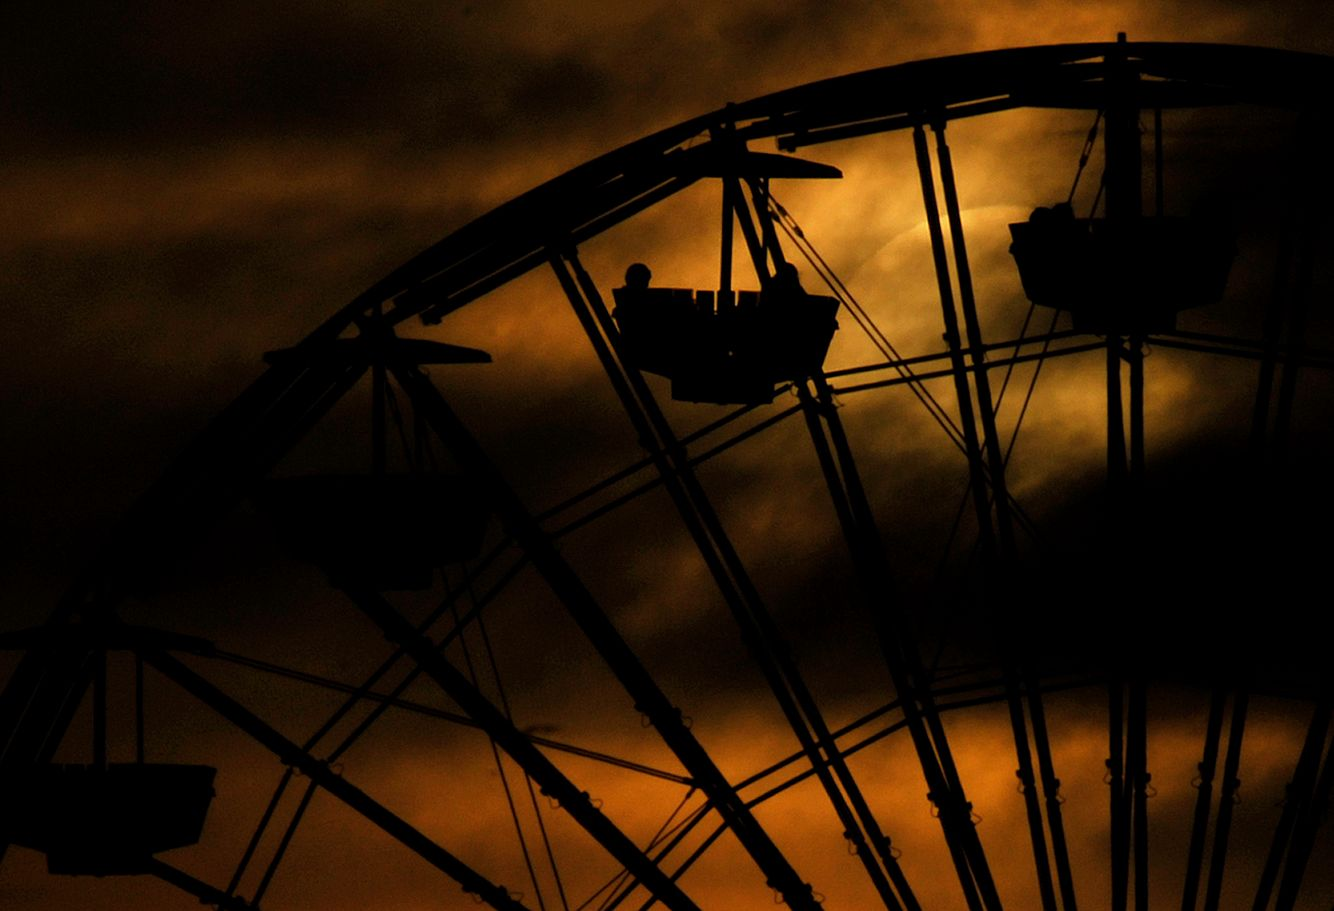 The sun sets behind clouds as people enjoy a Ferris Wheel ride at the Santa Monica Pier